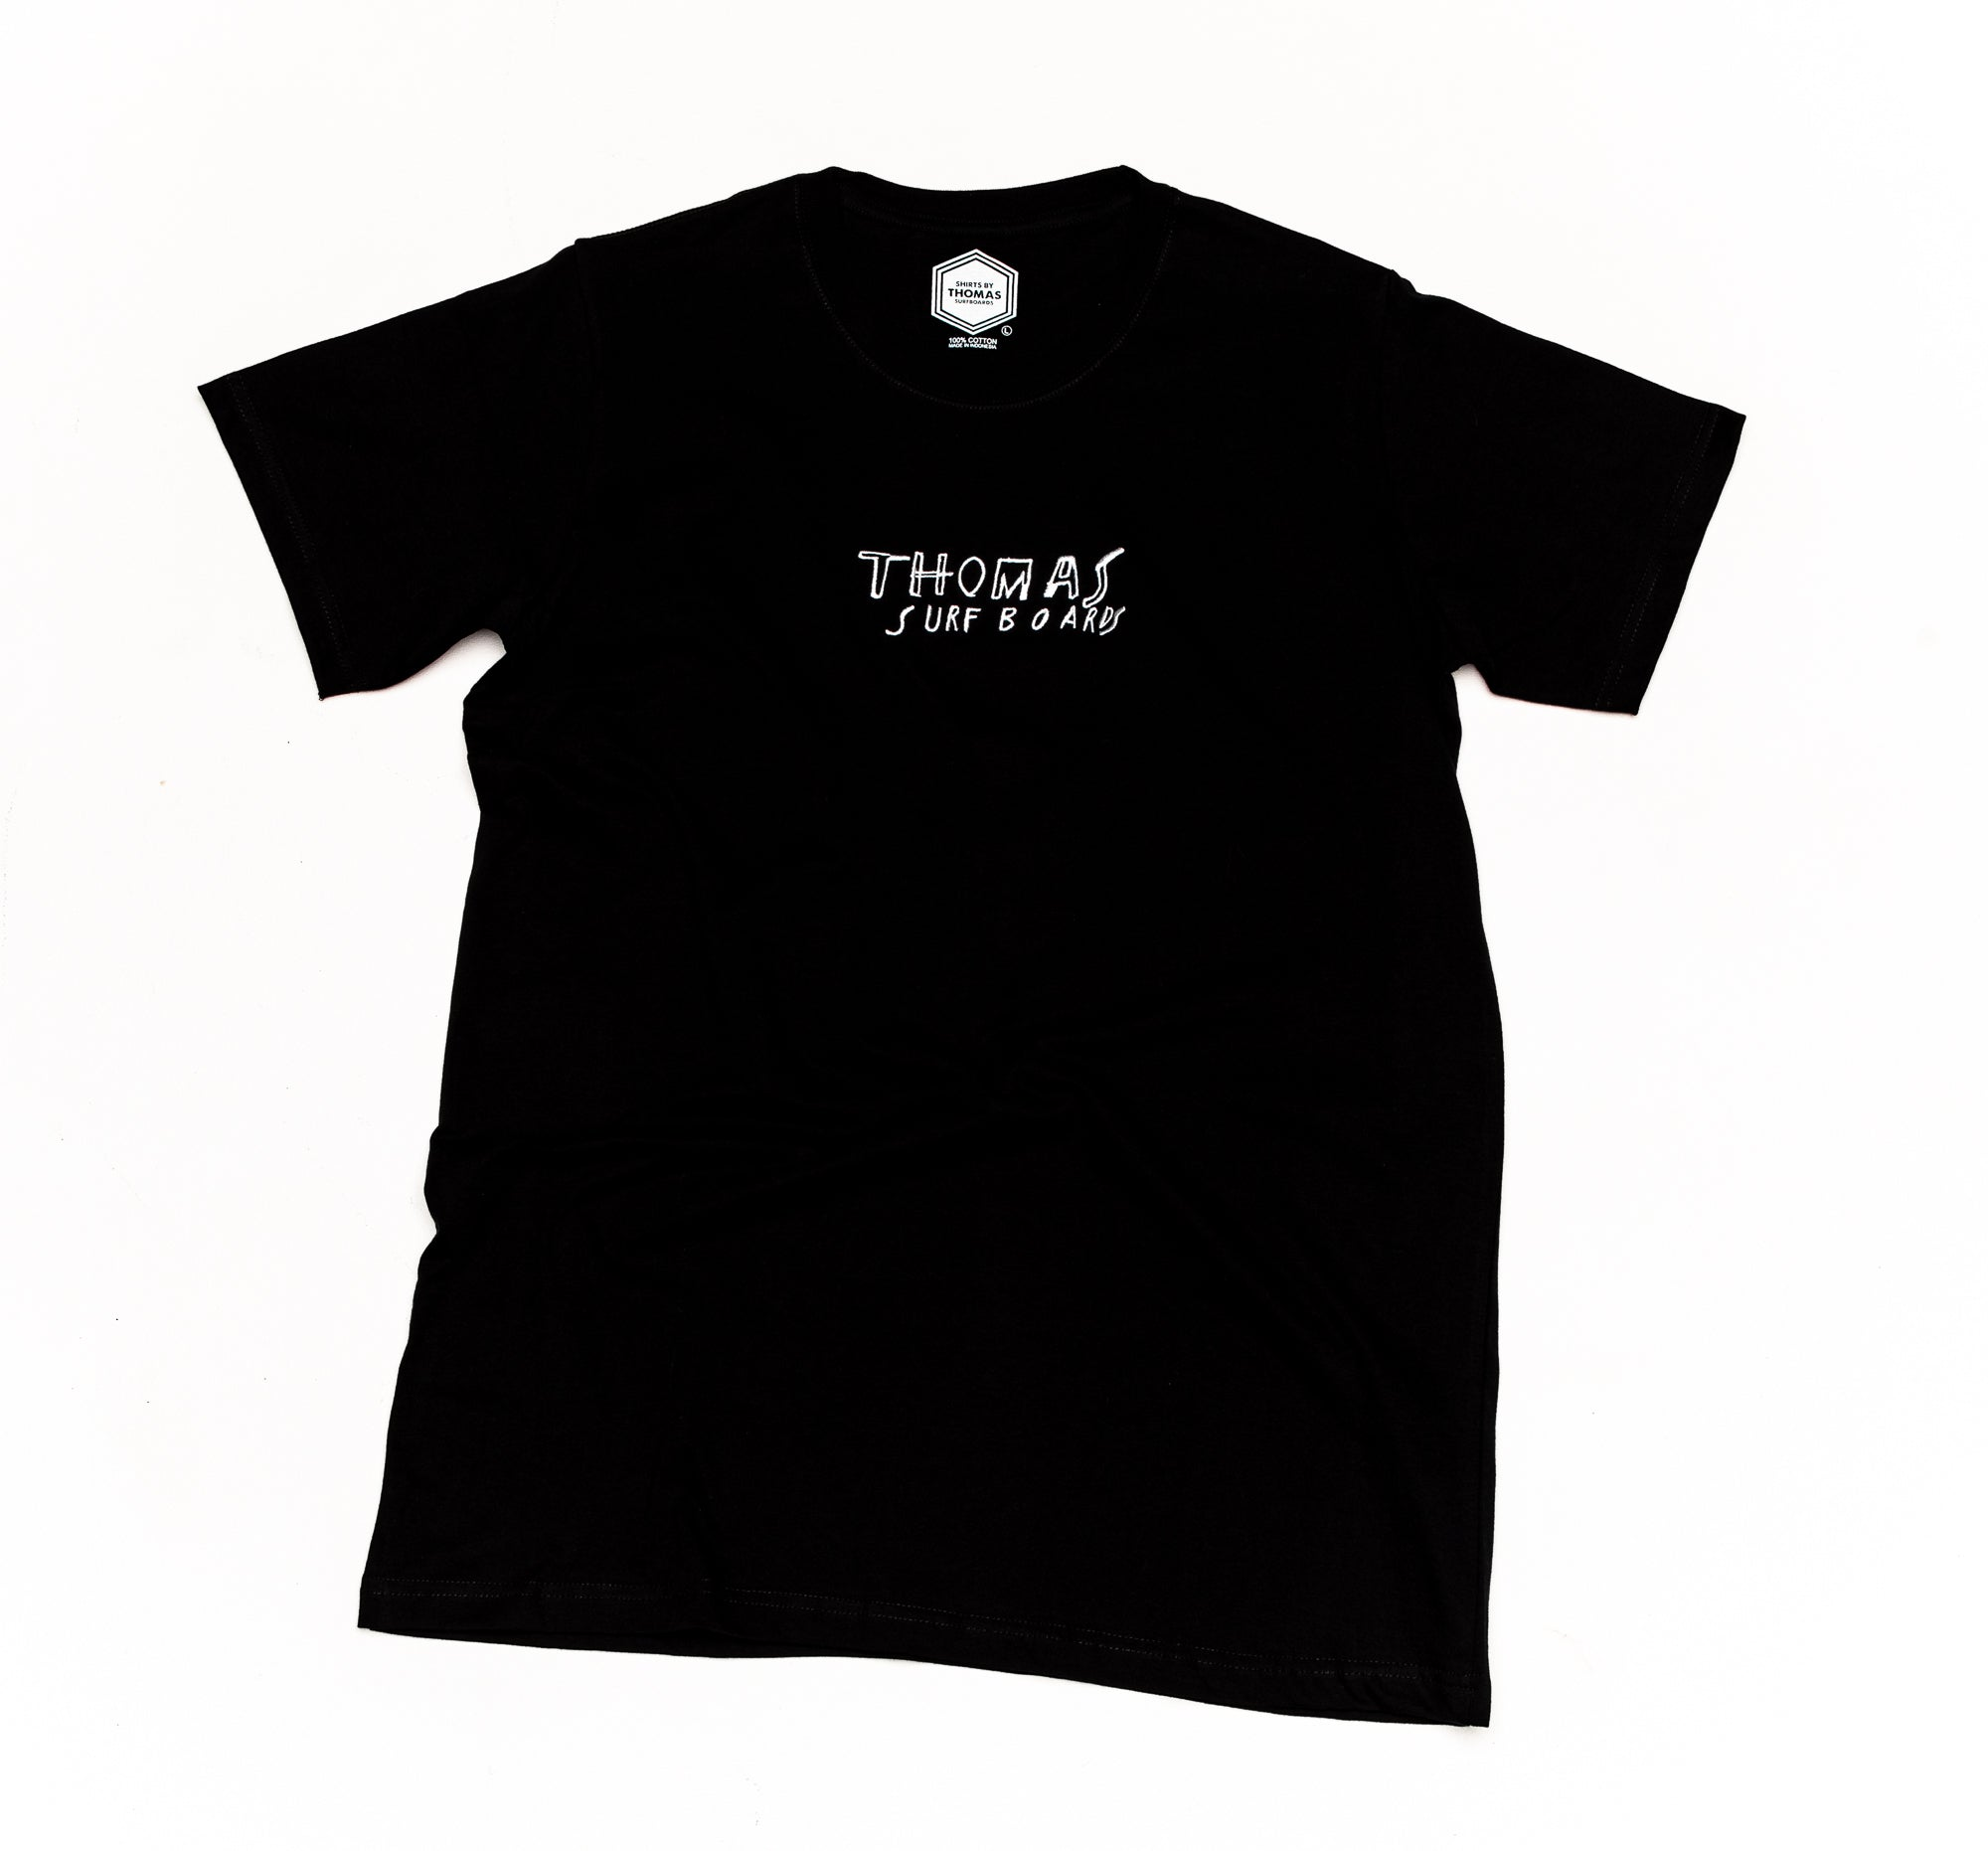 Thomas x Bob Moore Embroidered T-Shirt Black